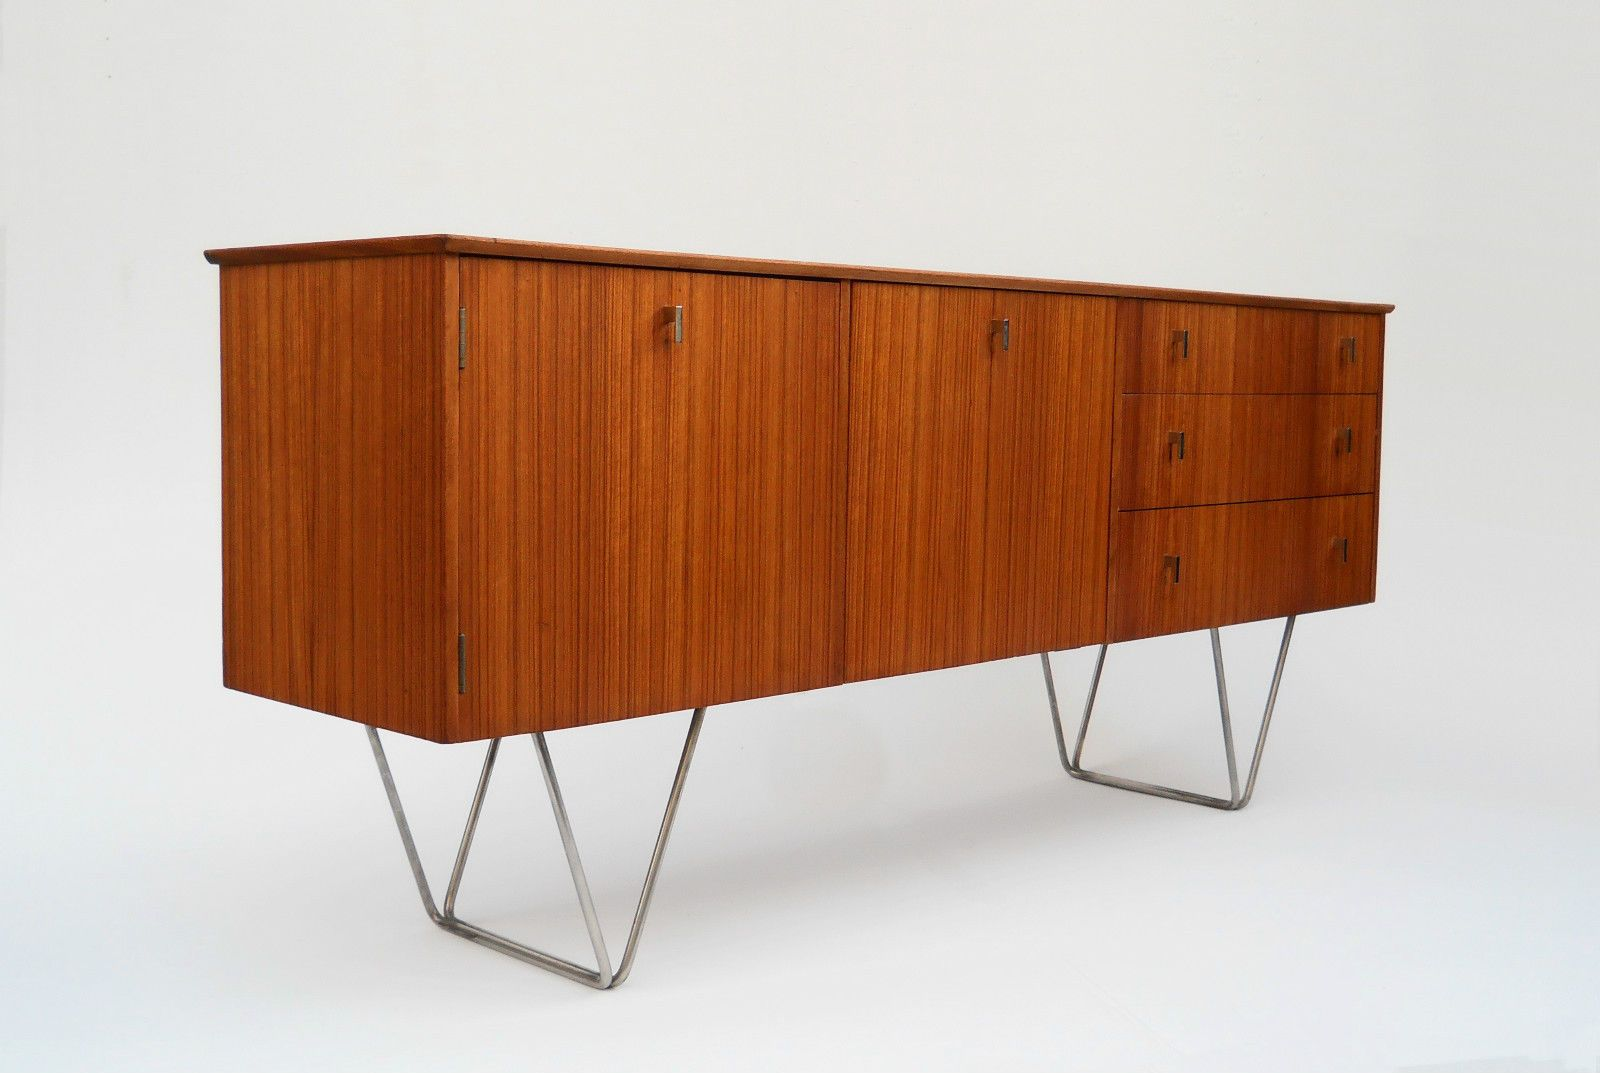 Vintage Sideboard Hairpin Legs Stunning Danish Teak Sideboard Unique Steel Hairpin Legs Wood